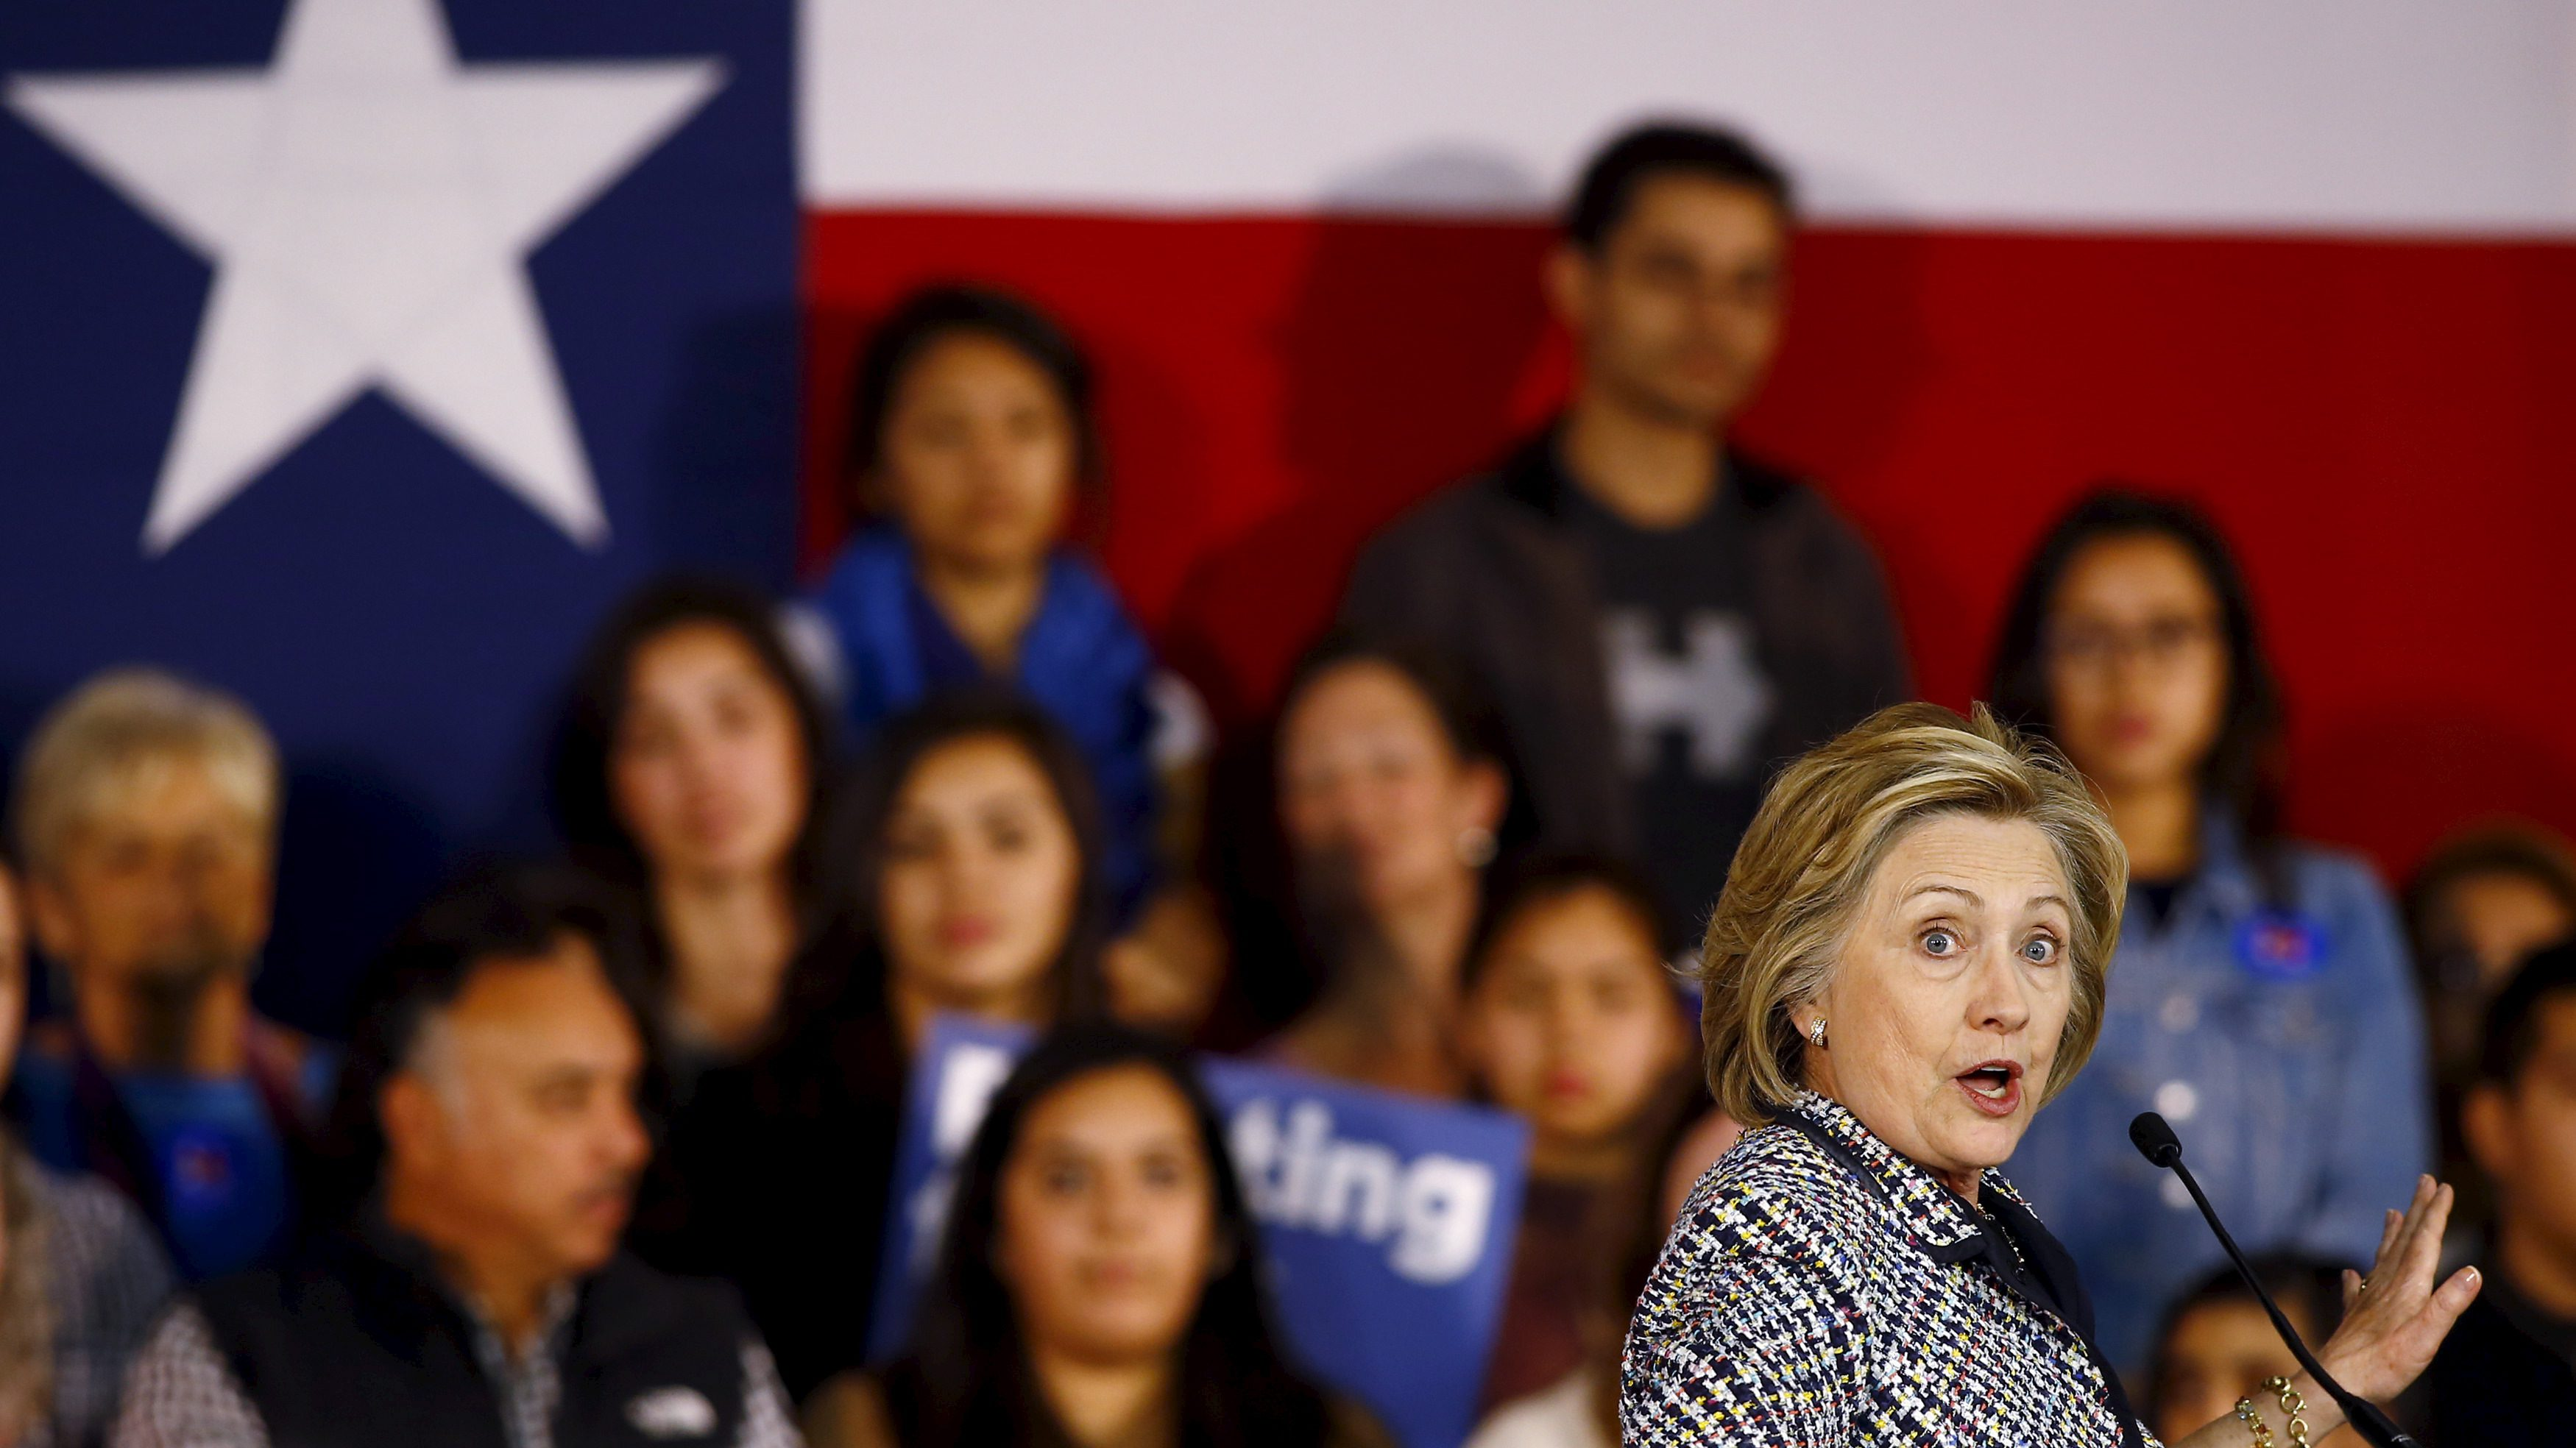 Democratic U.S. presidential candidate Hillary Clinton speaks in Dallas, Texas.